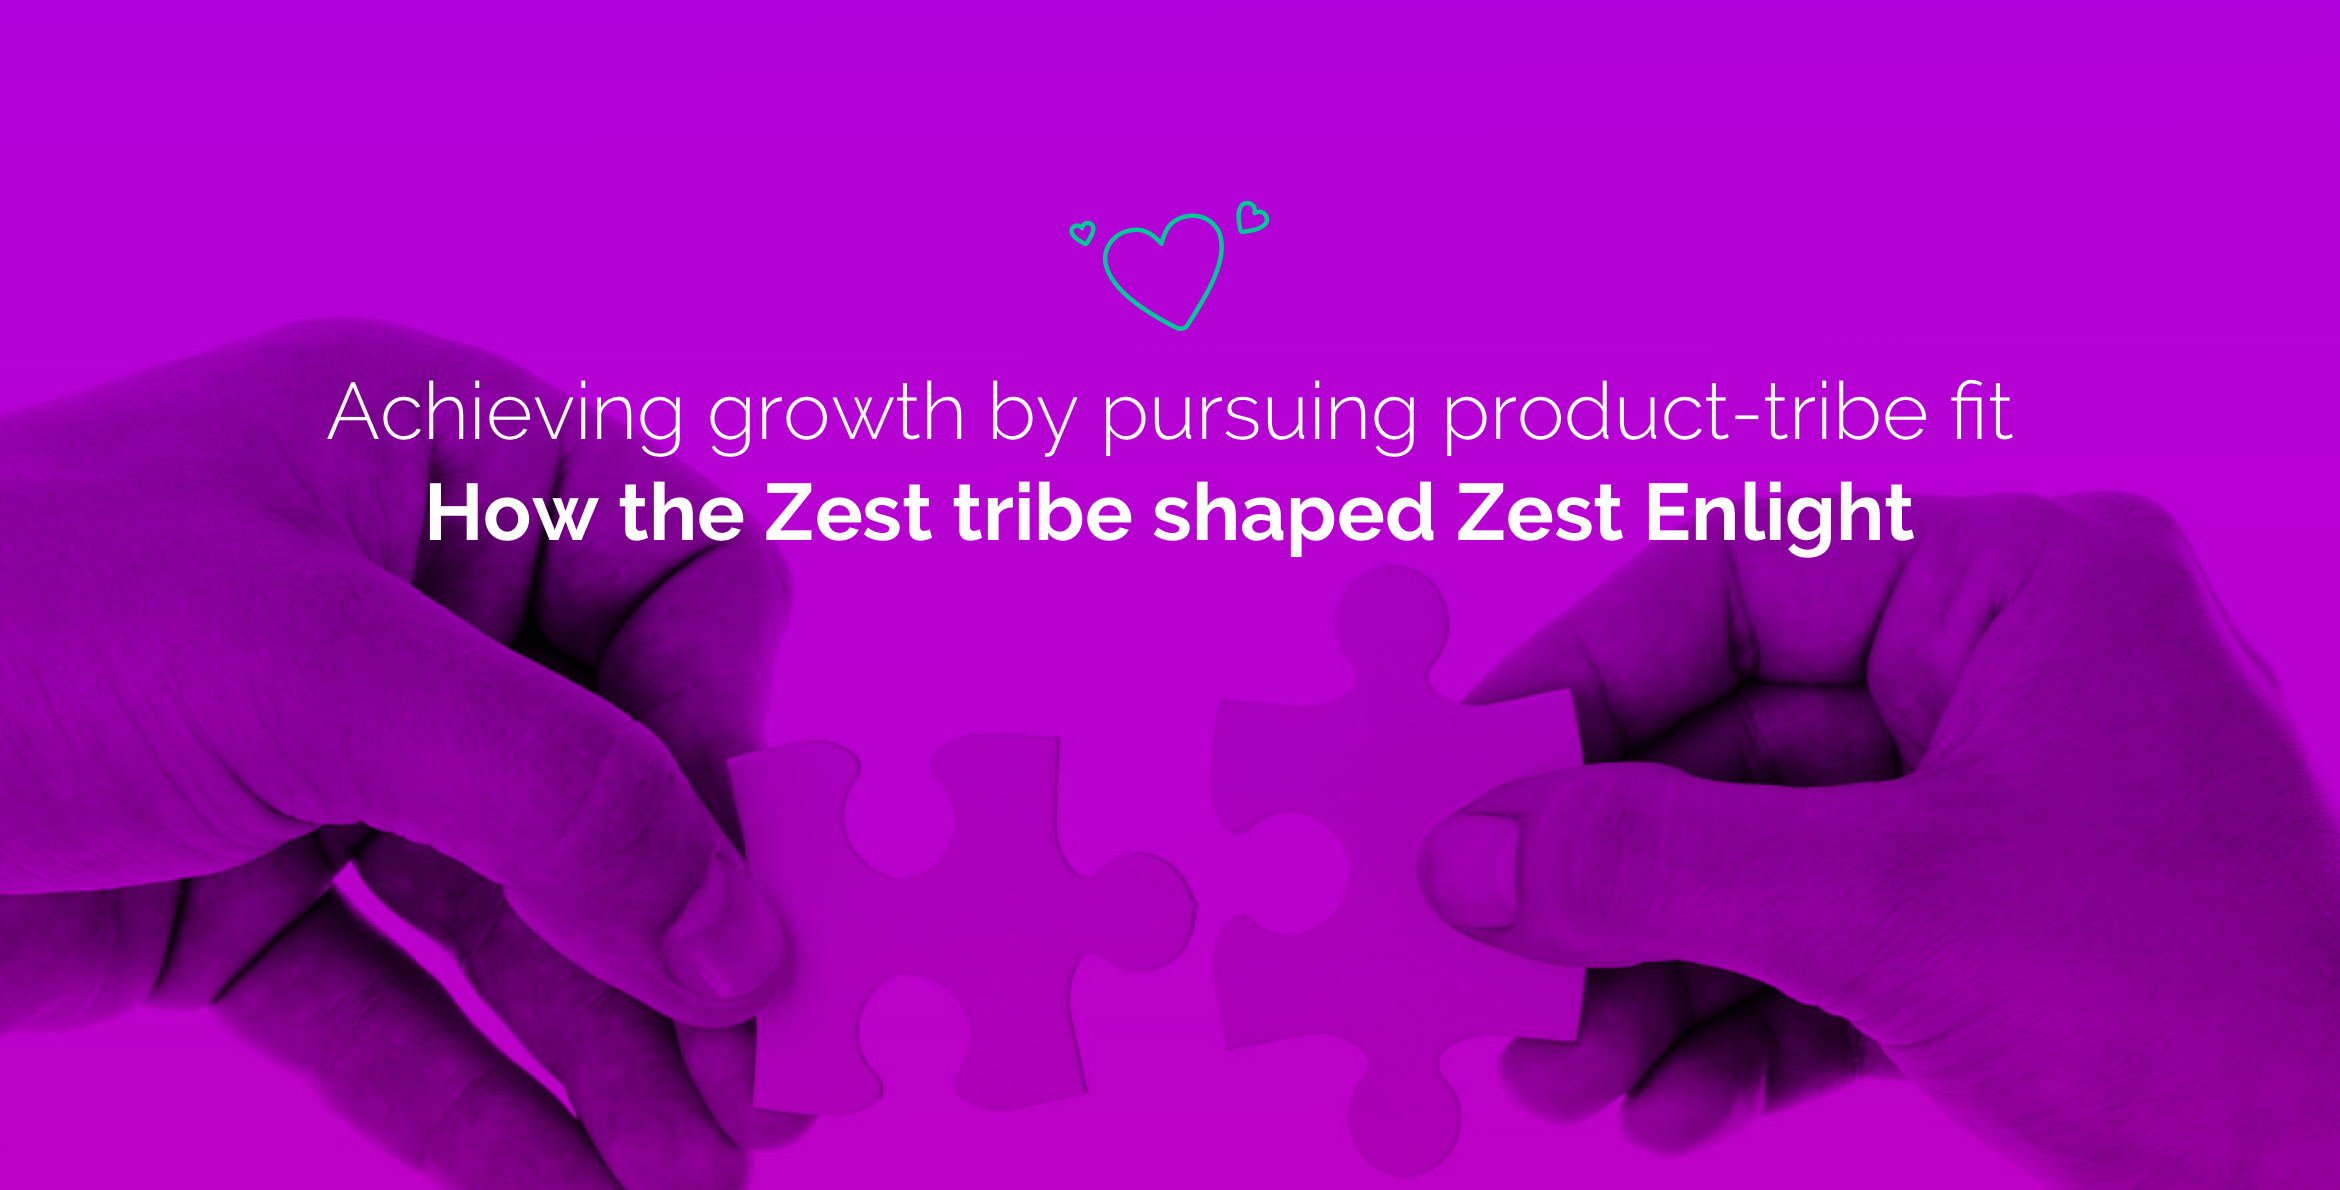 Achieving growth by pursing product-tribe fit: How the Zest tribe shaped Zest Enlight